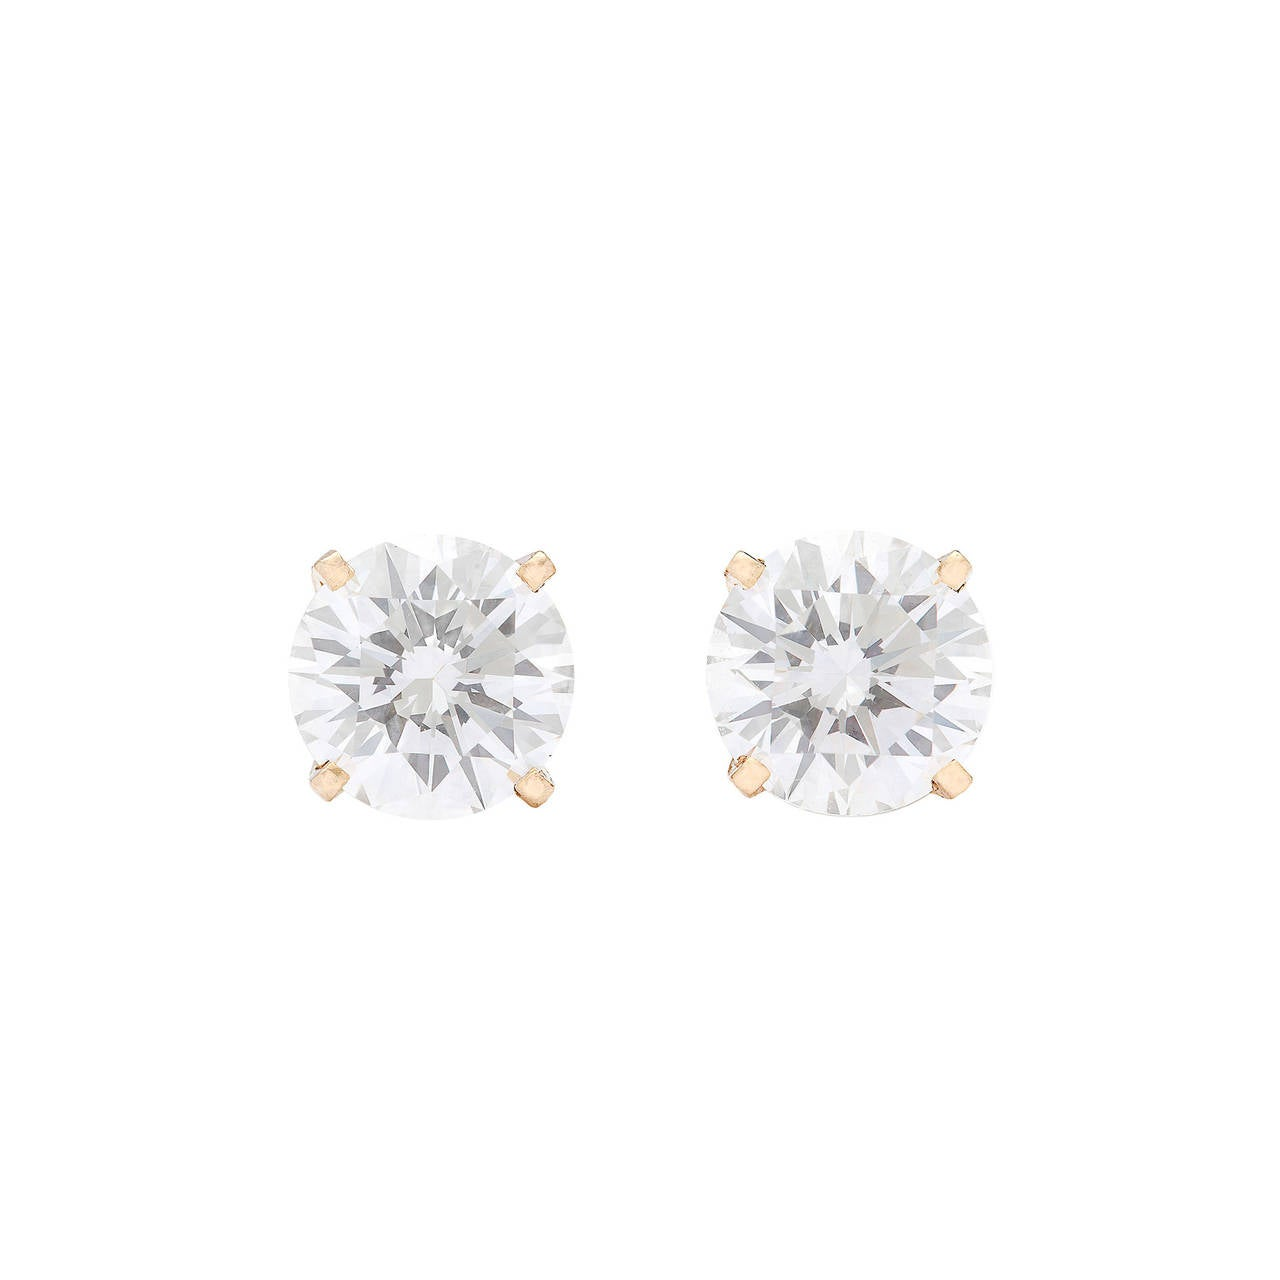 2.04 Carat GIA Cert Round Brilliant Cut Diamond Gold Earrings